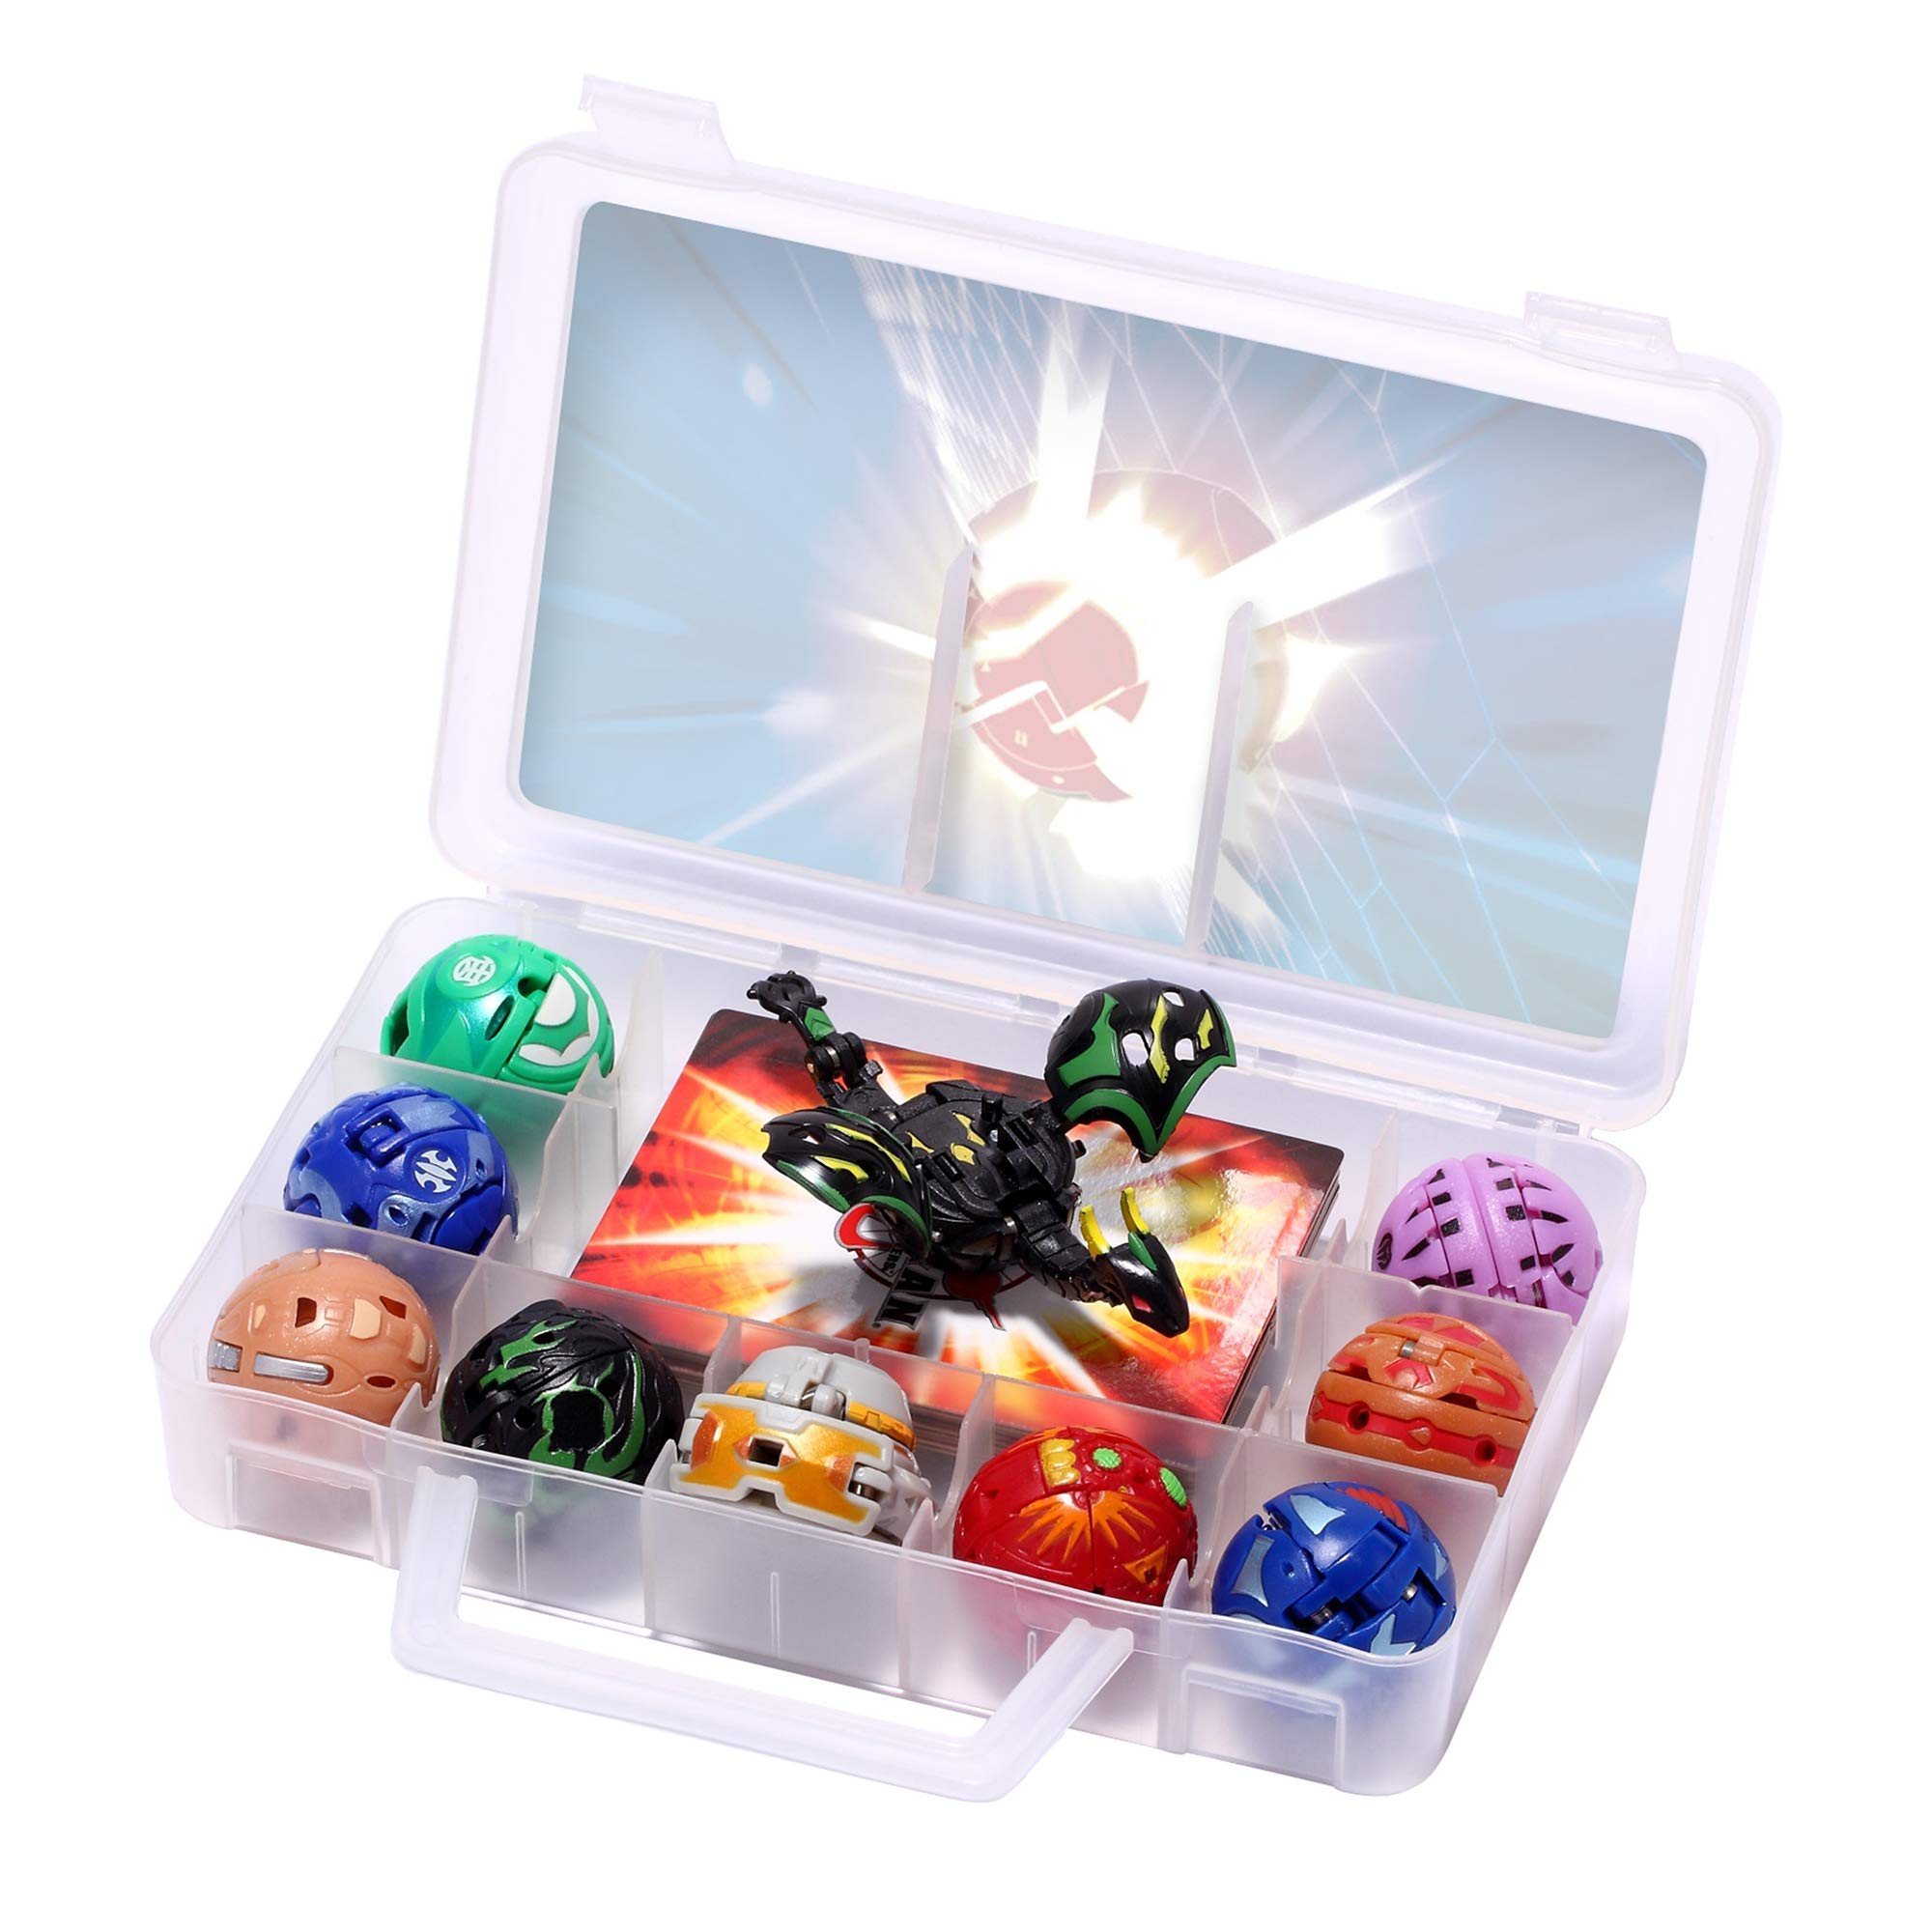 Battle Brawlers Bakugan Pack, 9 Bakugan All Different + 9 Metal Gate Card with Baku-Storage Case Great Toy Gift and Collection, for Ages 6 and Up (9-Pack)